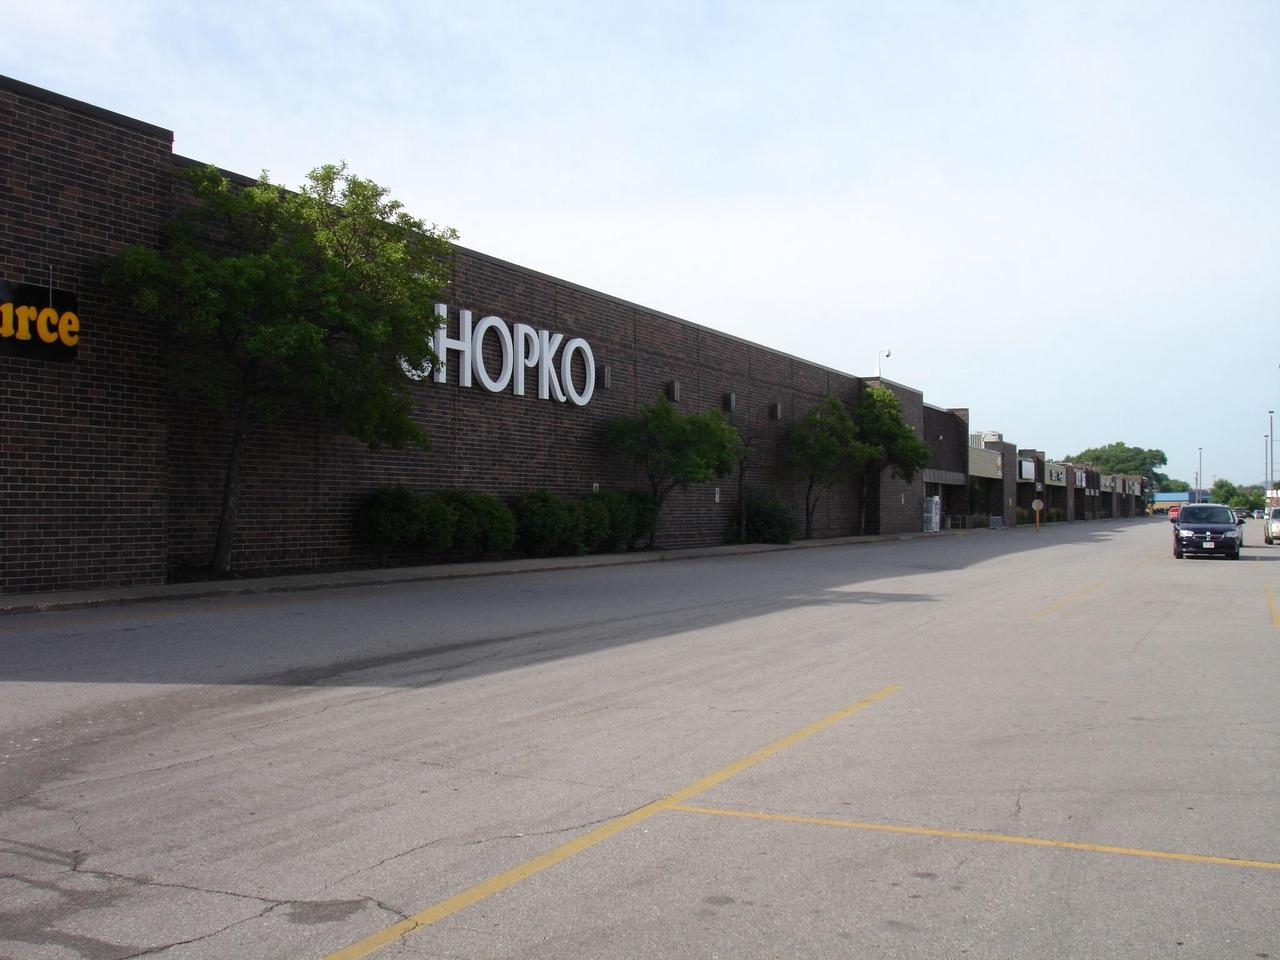 3600 SQ FT RETAIL SPACE NEXT TO PHARMACY NEAR SHOPKO SPACE. HIGH TRAFFIC, HIGH VISIBILITY WITH NICE MIX OF TENANTS ANCHORED BY SHOPKO AND HARBOR FREIGHT TOOLS.